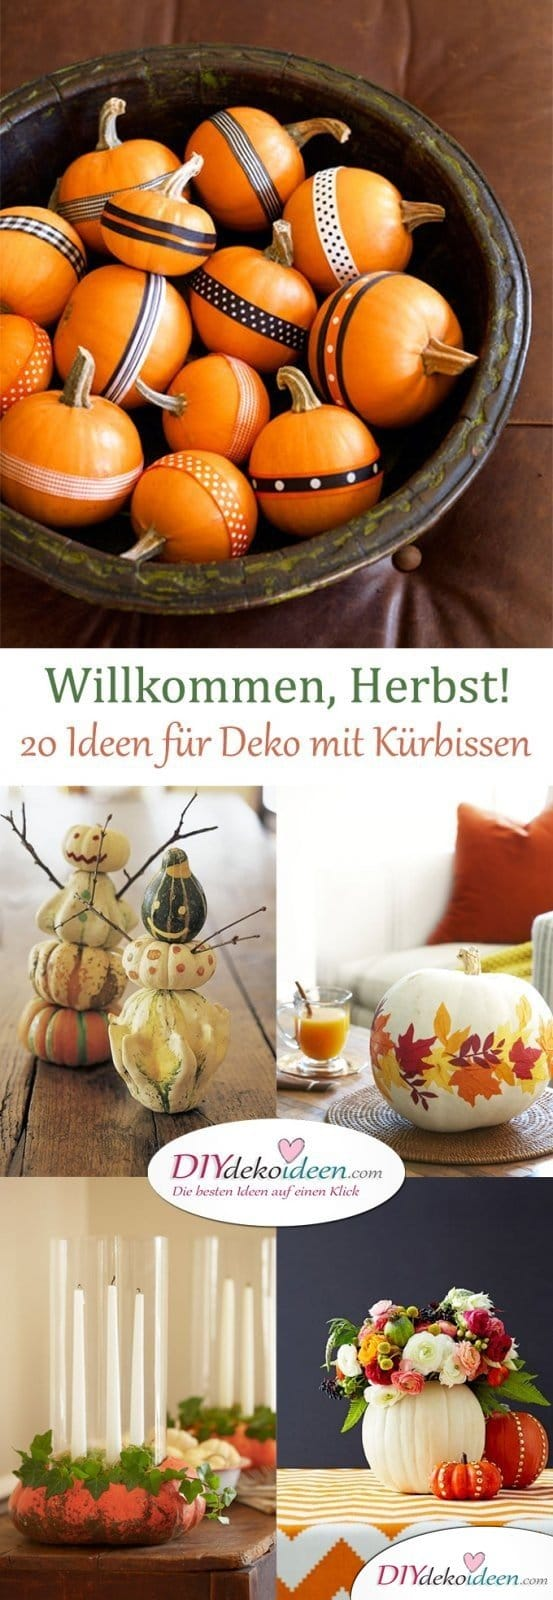 willkommen herbst 20 ideen f r deko mit k rbissen. Black Bedroom Furniture Sets. Home Design Ideas